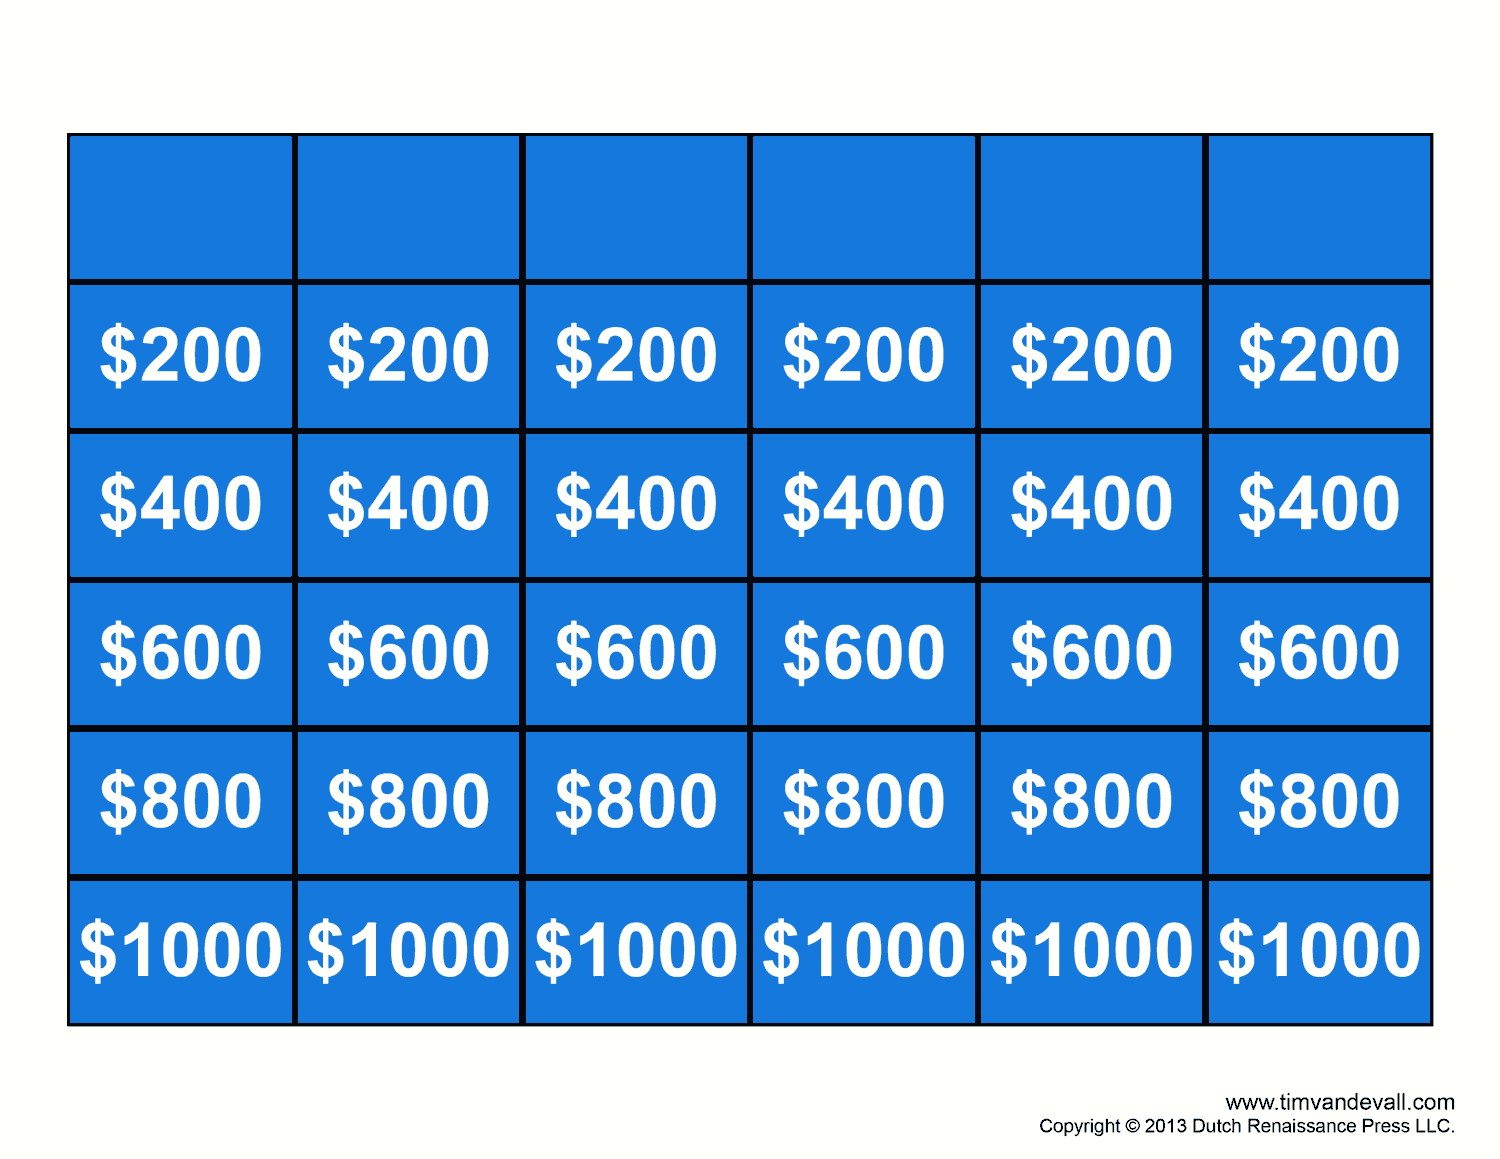 Free Jeopardy Template Make Your Own Jeopardy Game – Blank Jeopardy Template